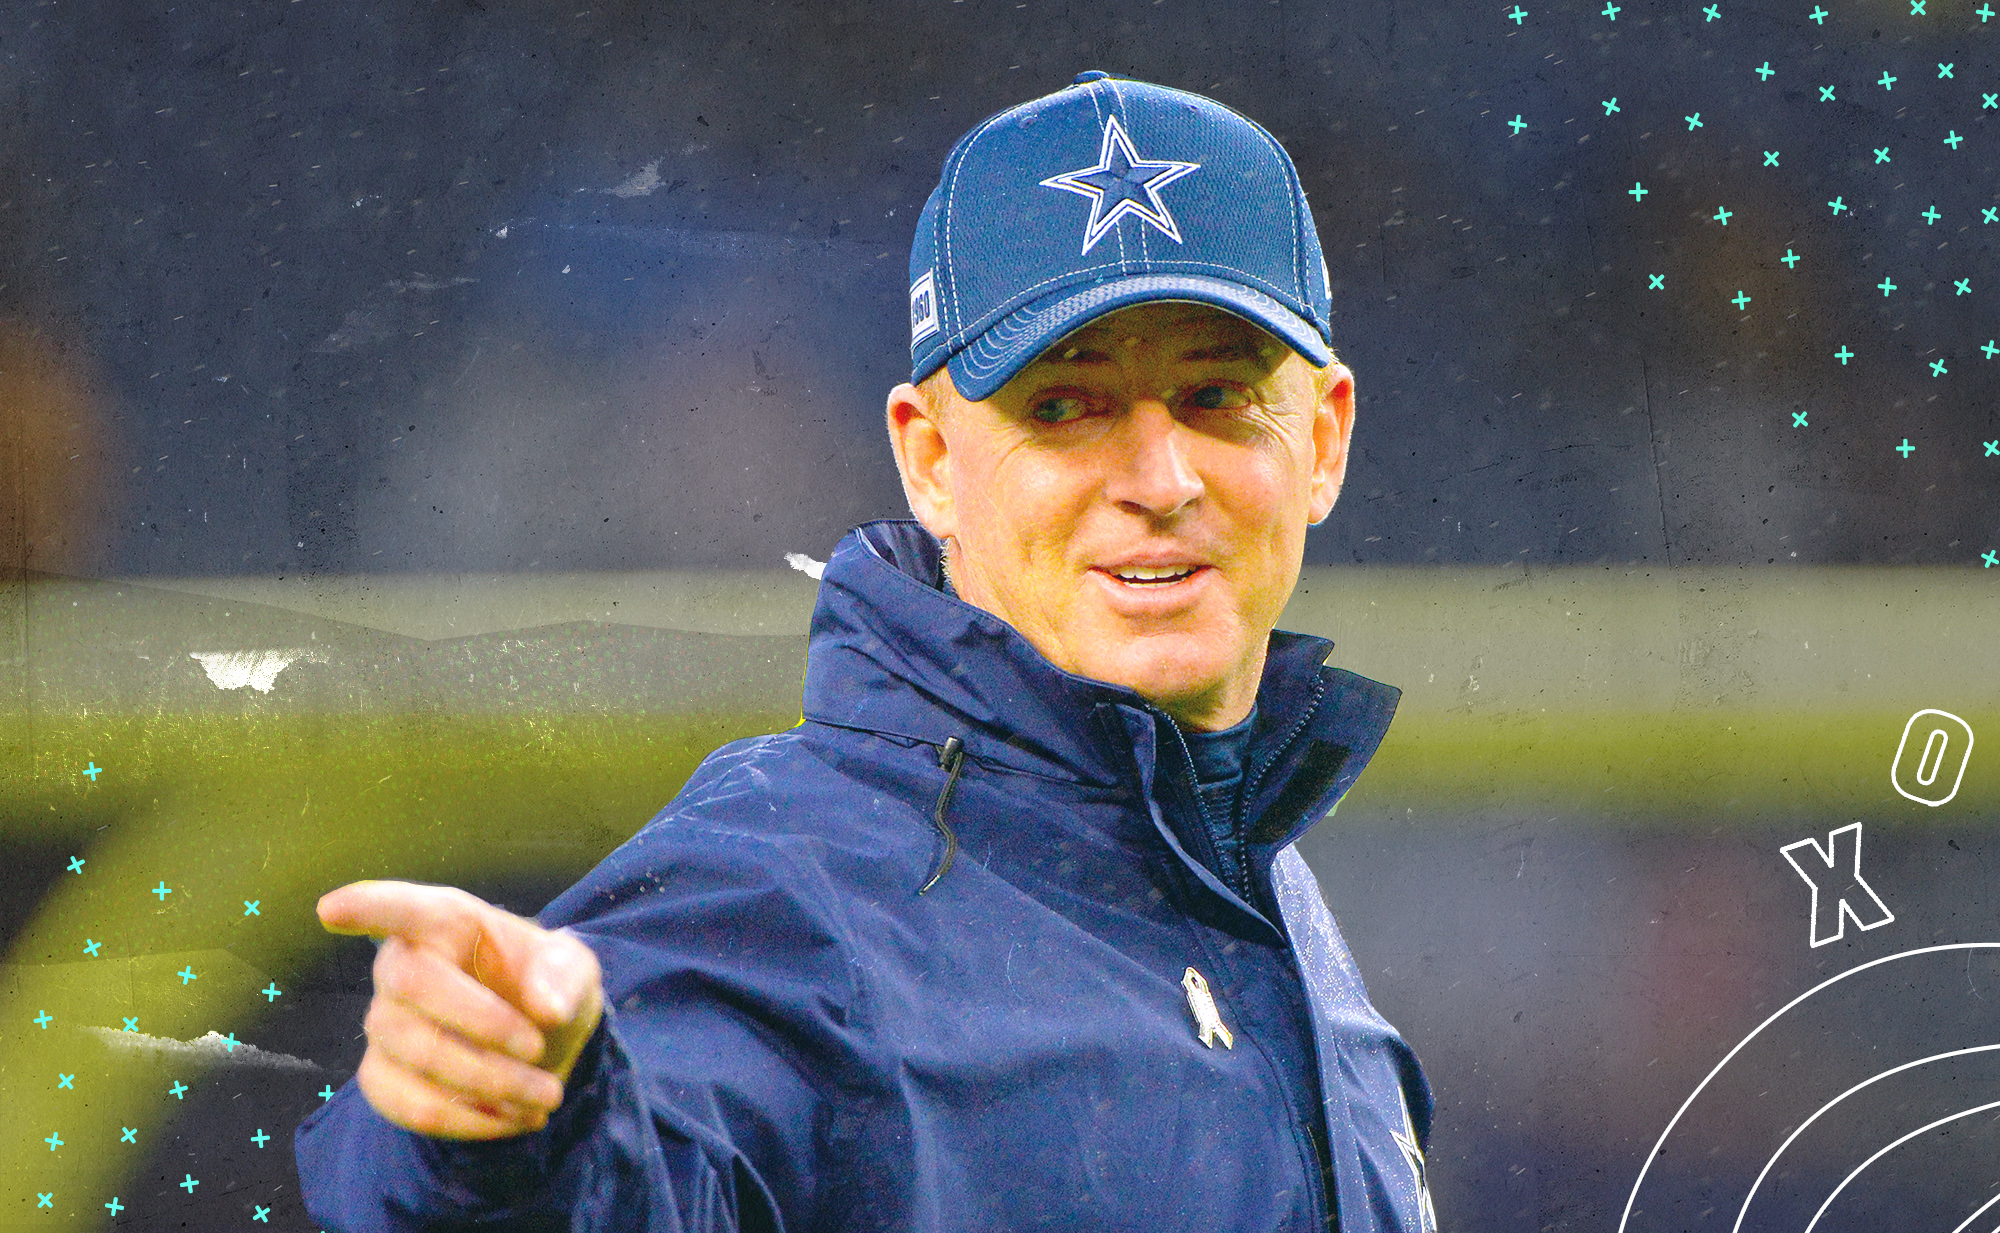 Cowboys head coach Jason Garrett, wearing a hat with the Dallas star, points with his right finger